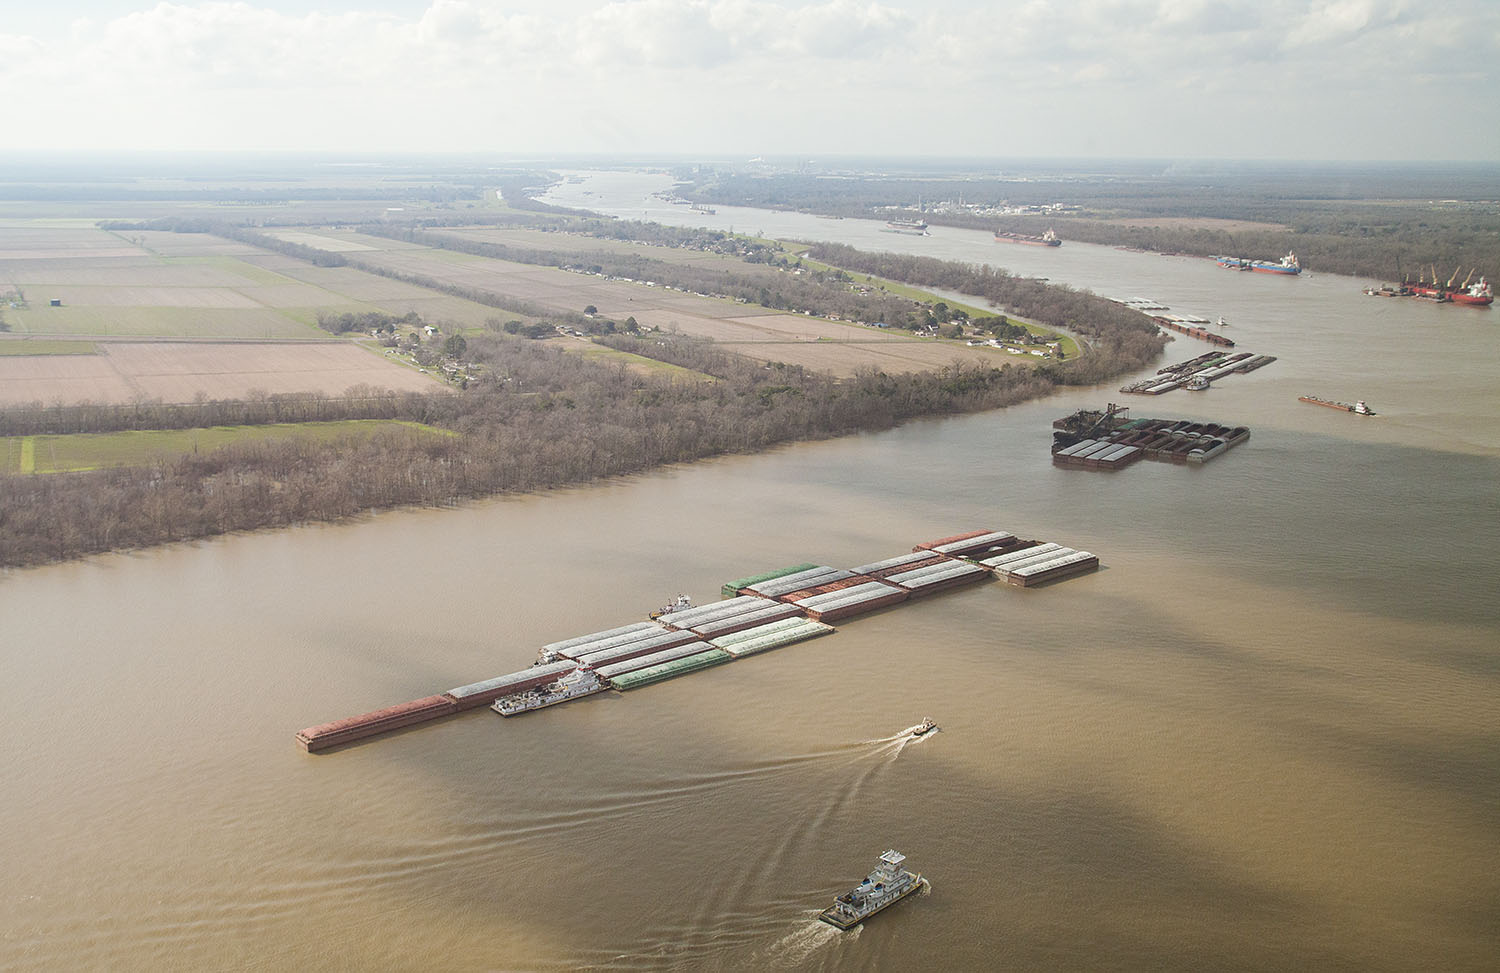 The Corps' 2020 work plan includes $85.35 million to initiate the first phase of deepening the Mississippi River from the Baton Rouge, La., to the Gulf of Mexico to 50 feet. (Photo by Frank McCormack)